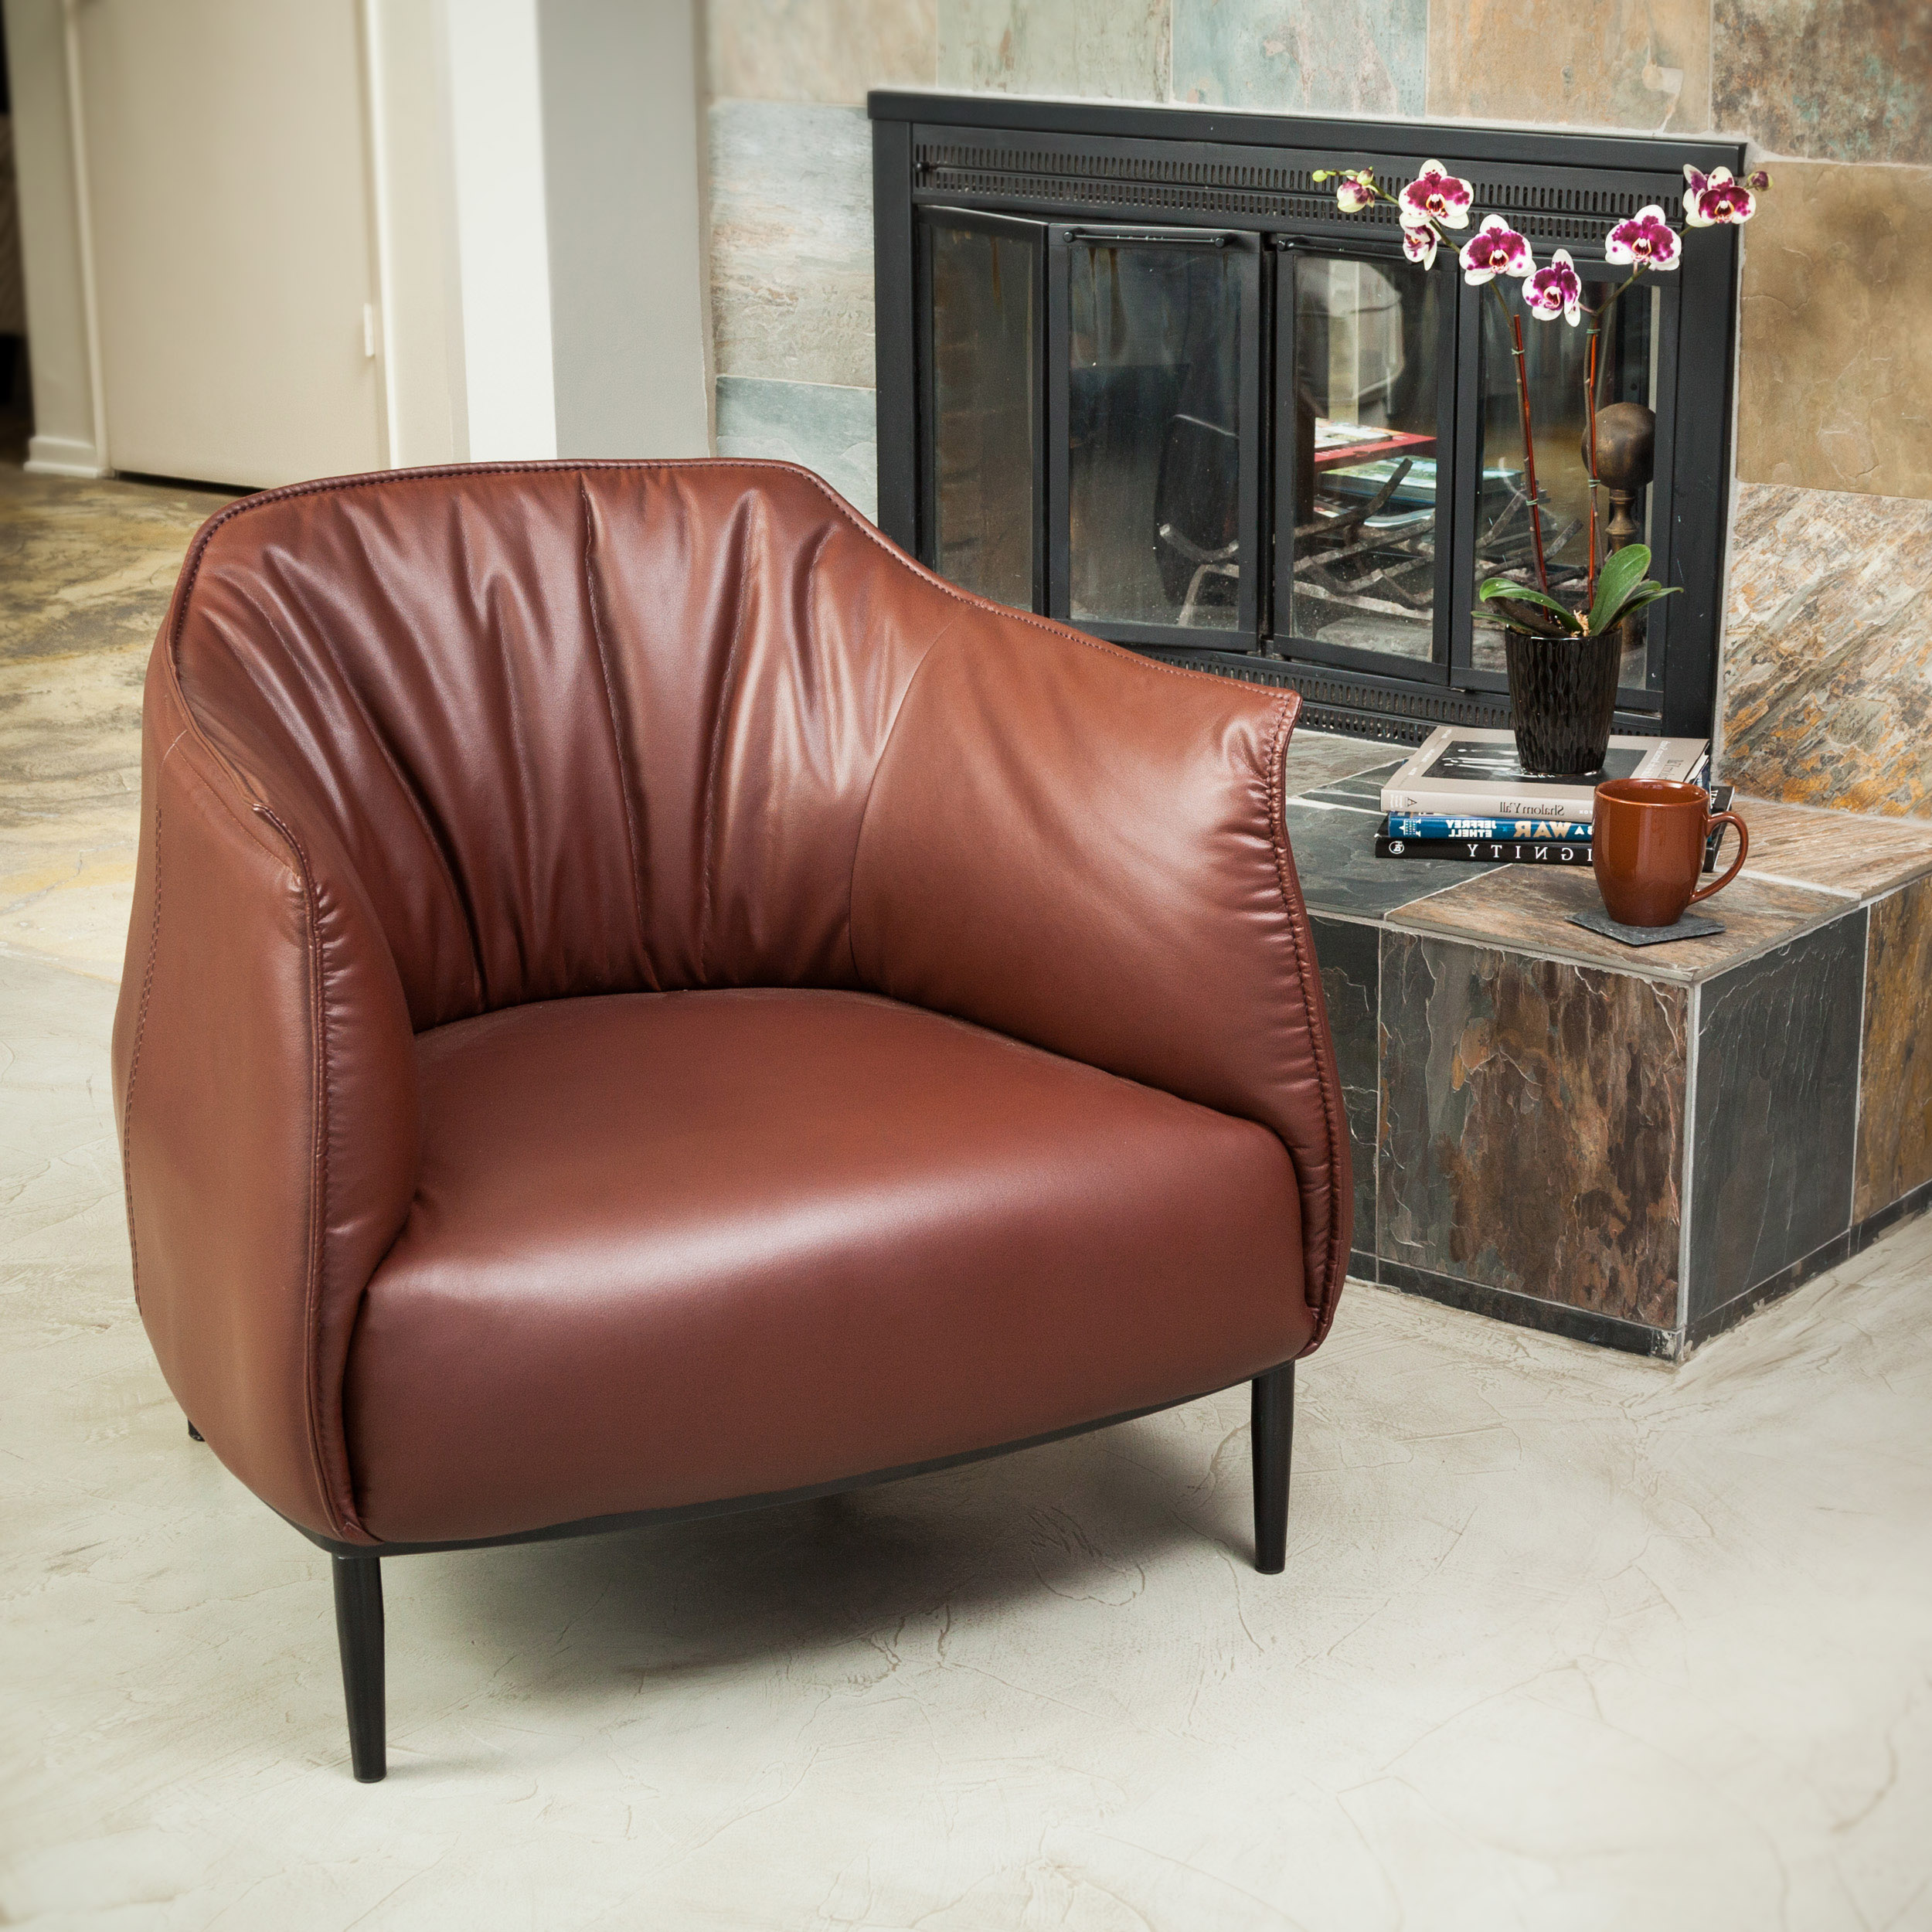 Christopher Knight Home Chesterfield Tufted Leather